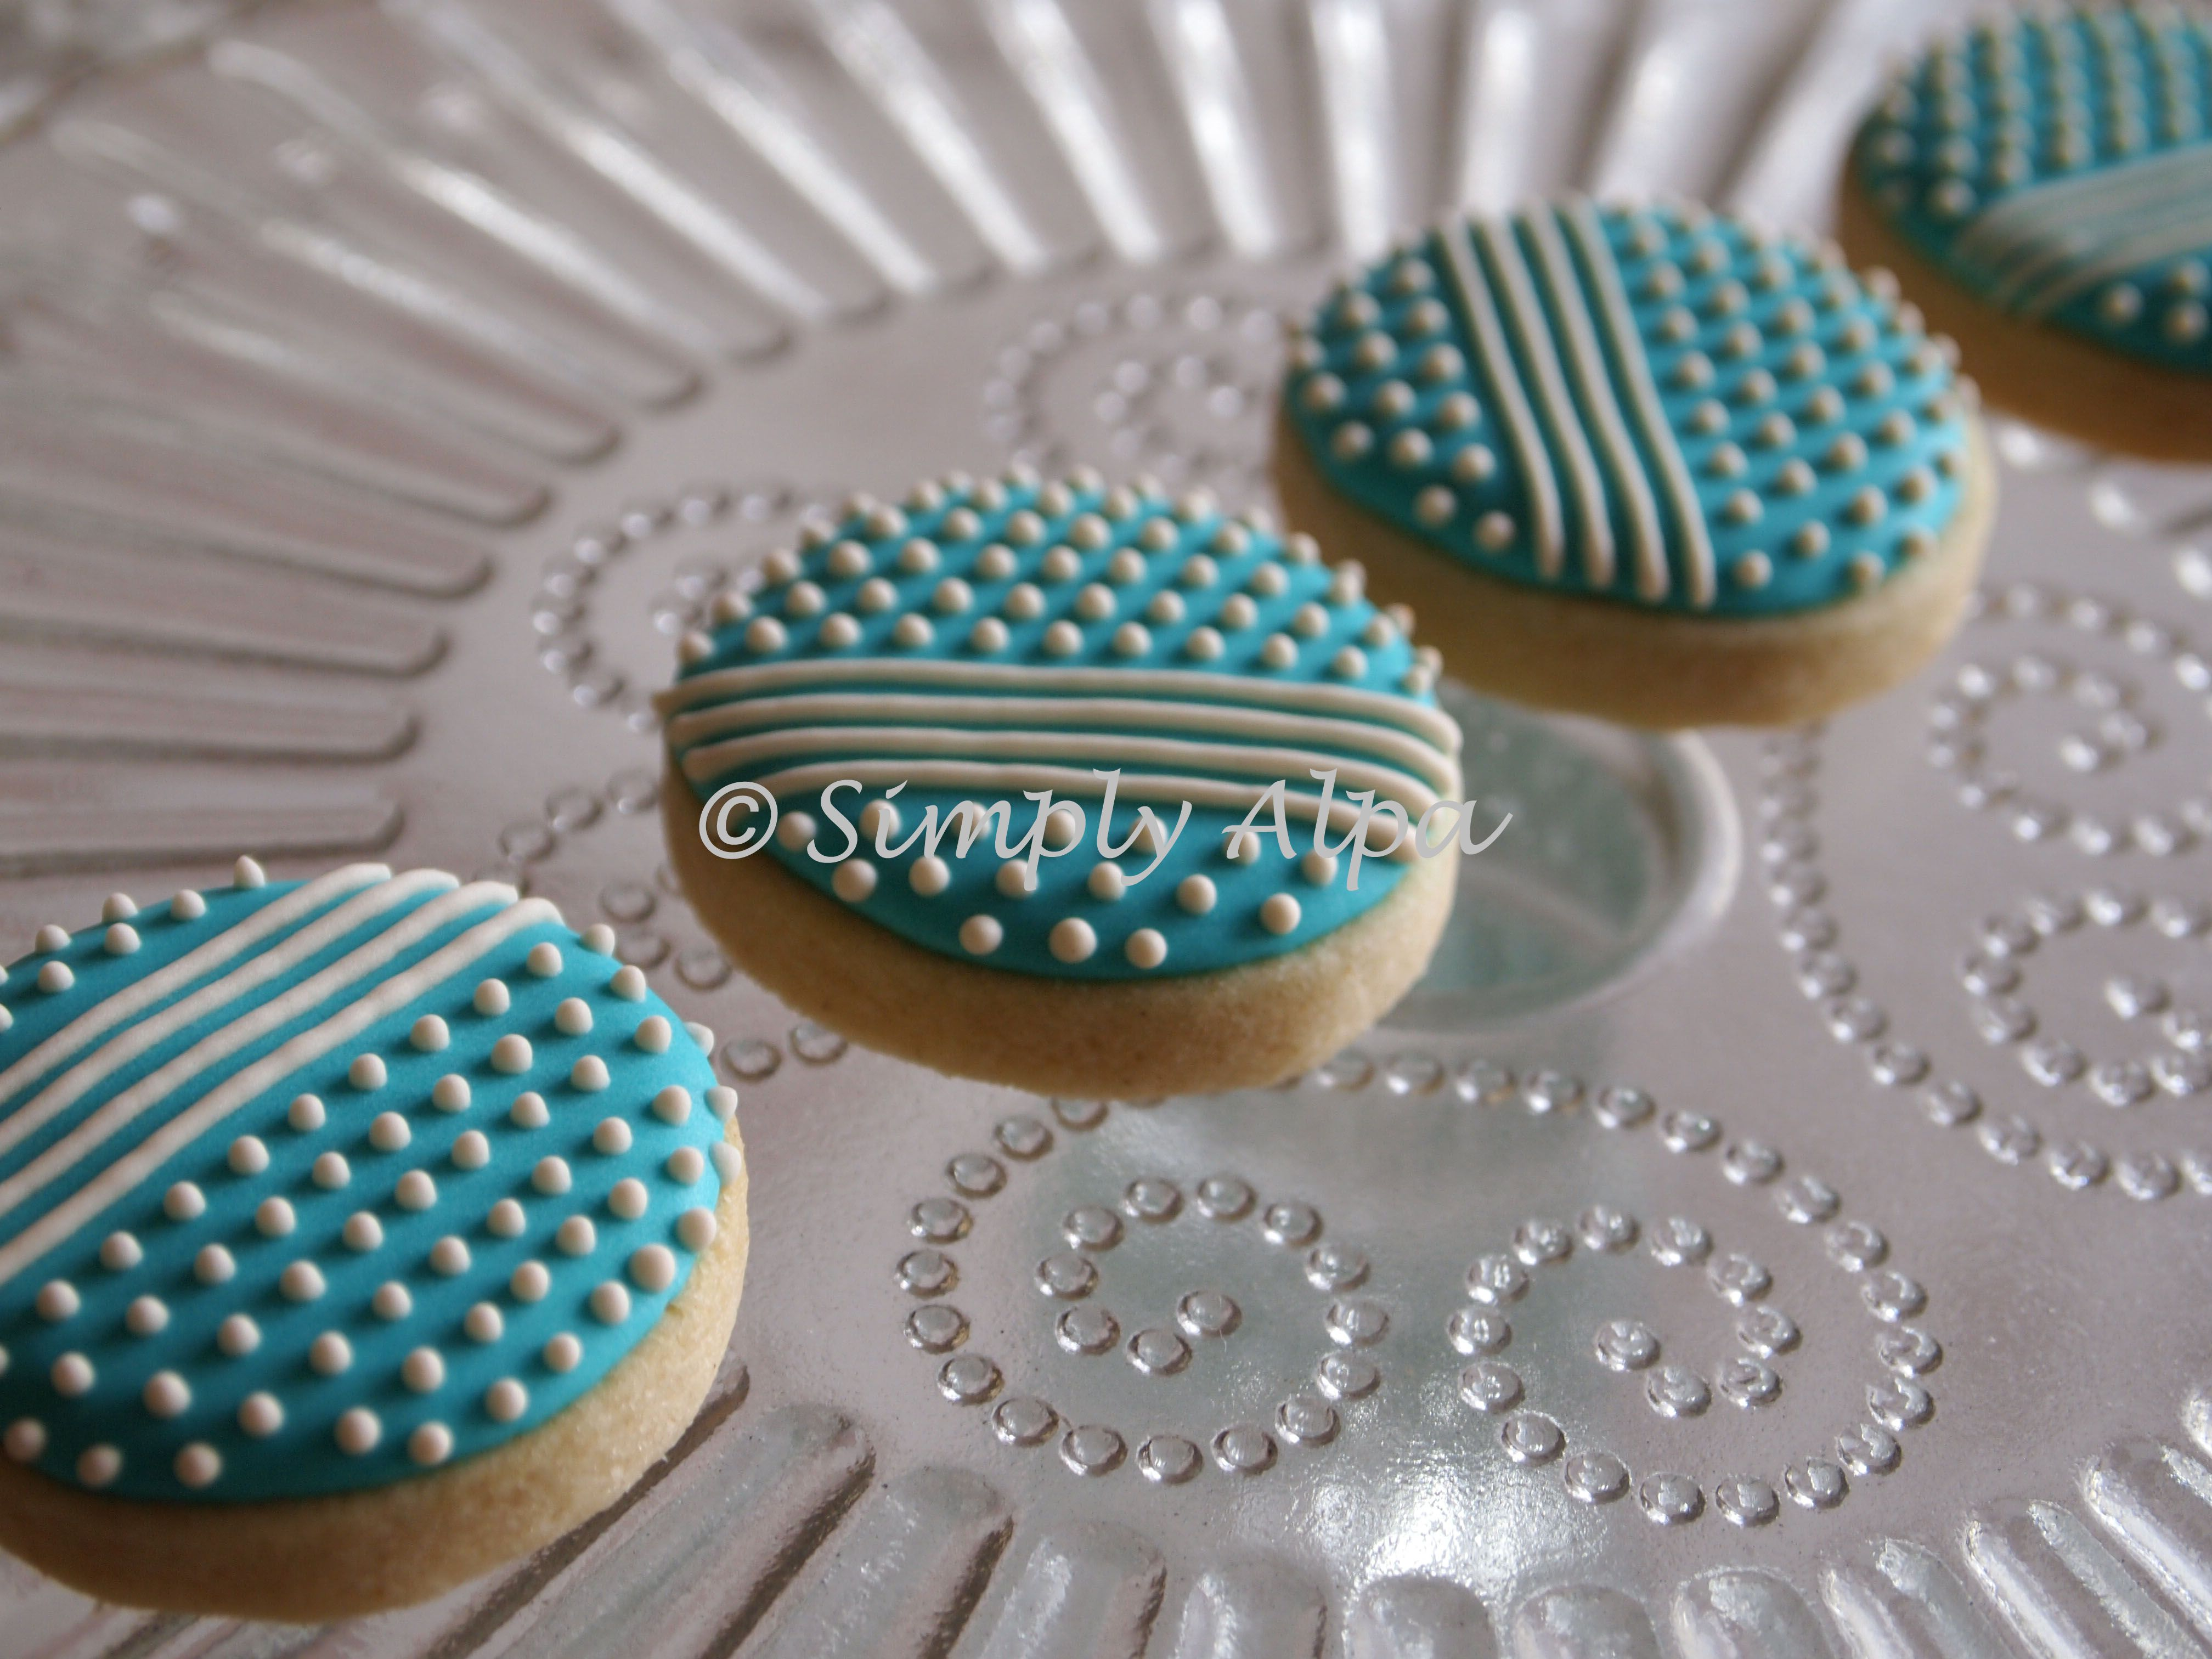 Teal round cookies with lines and dots, simple but effective